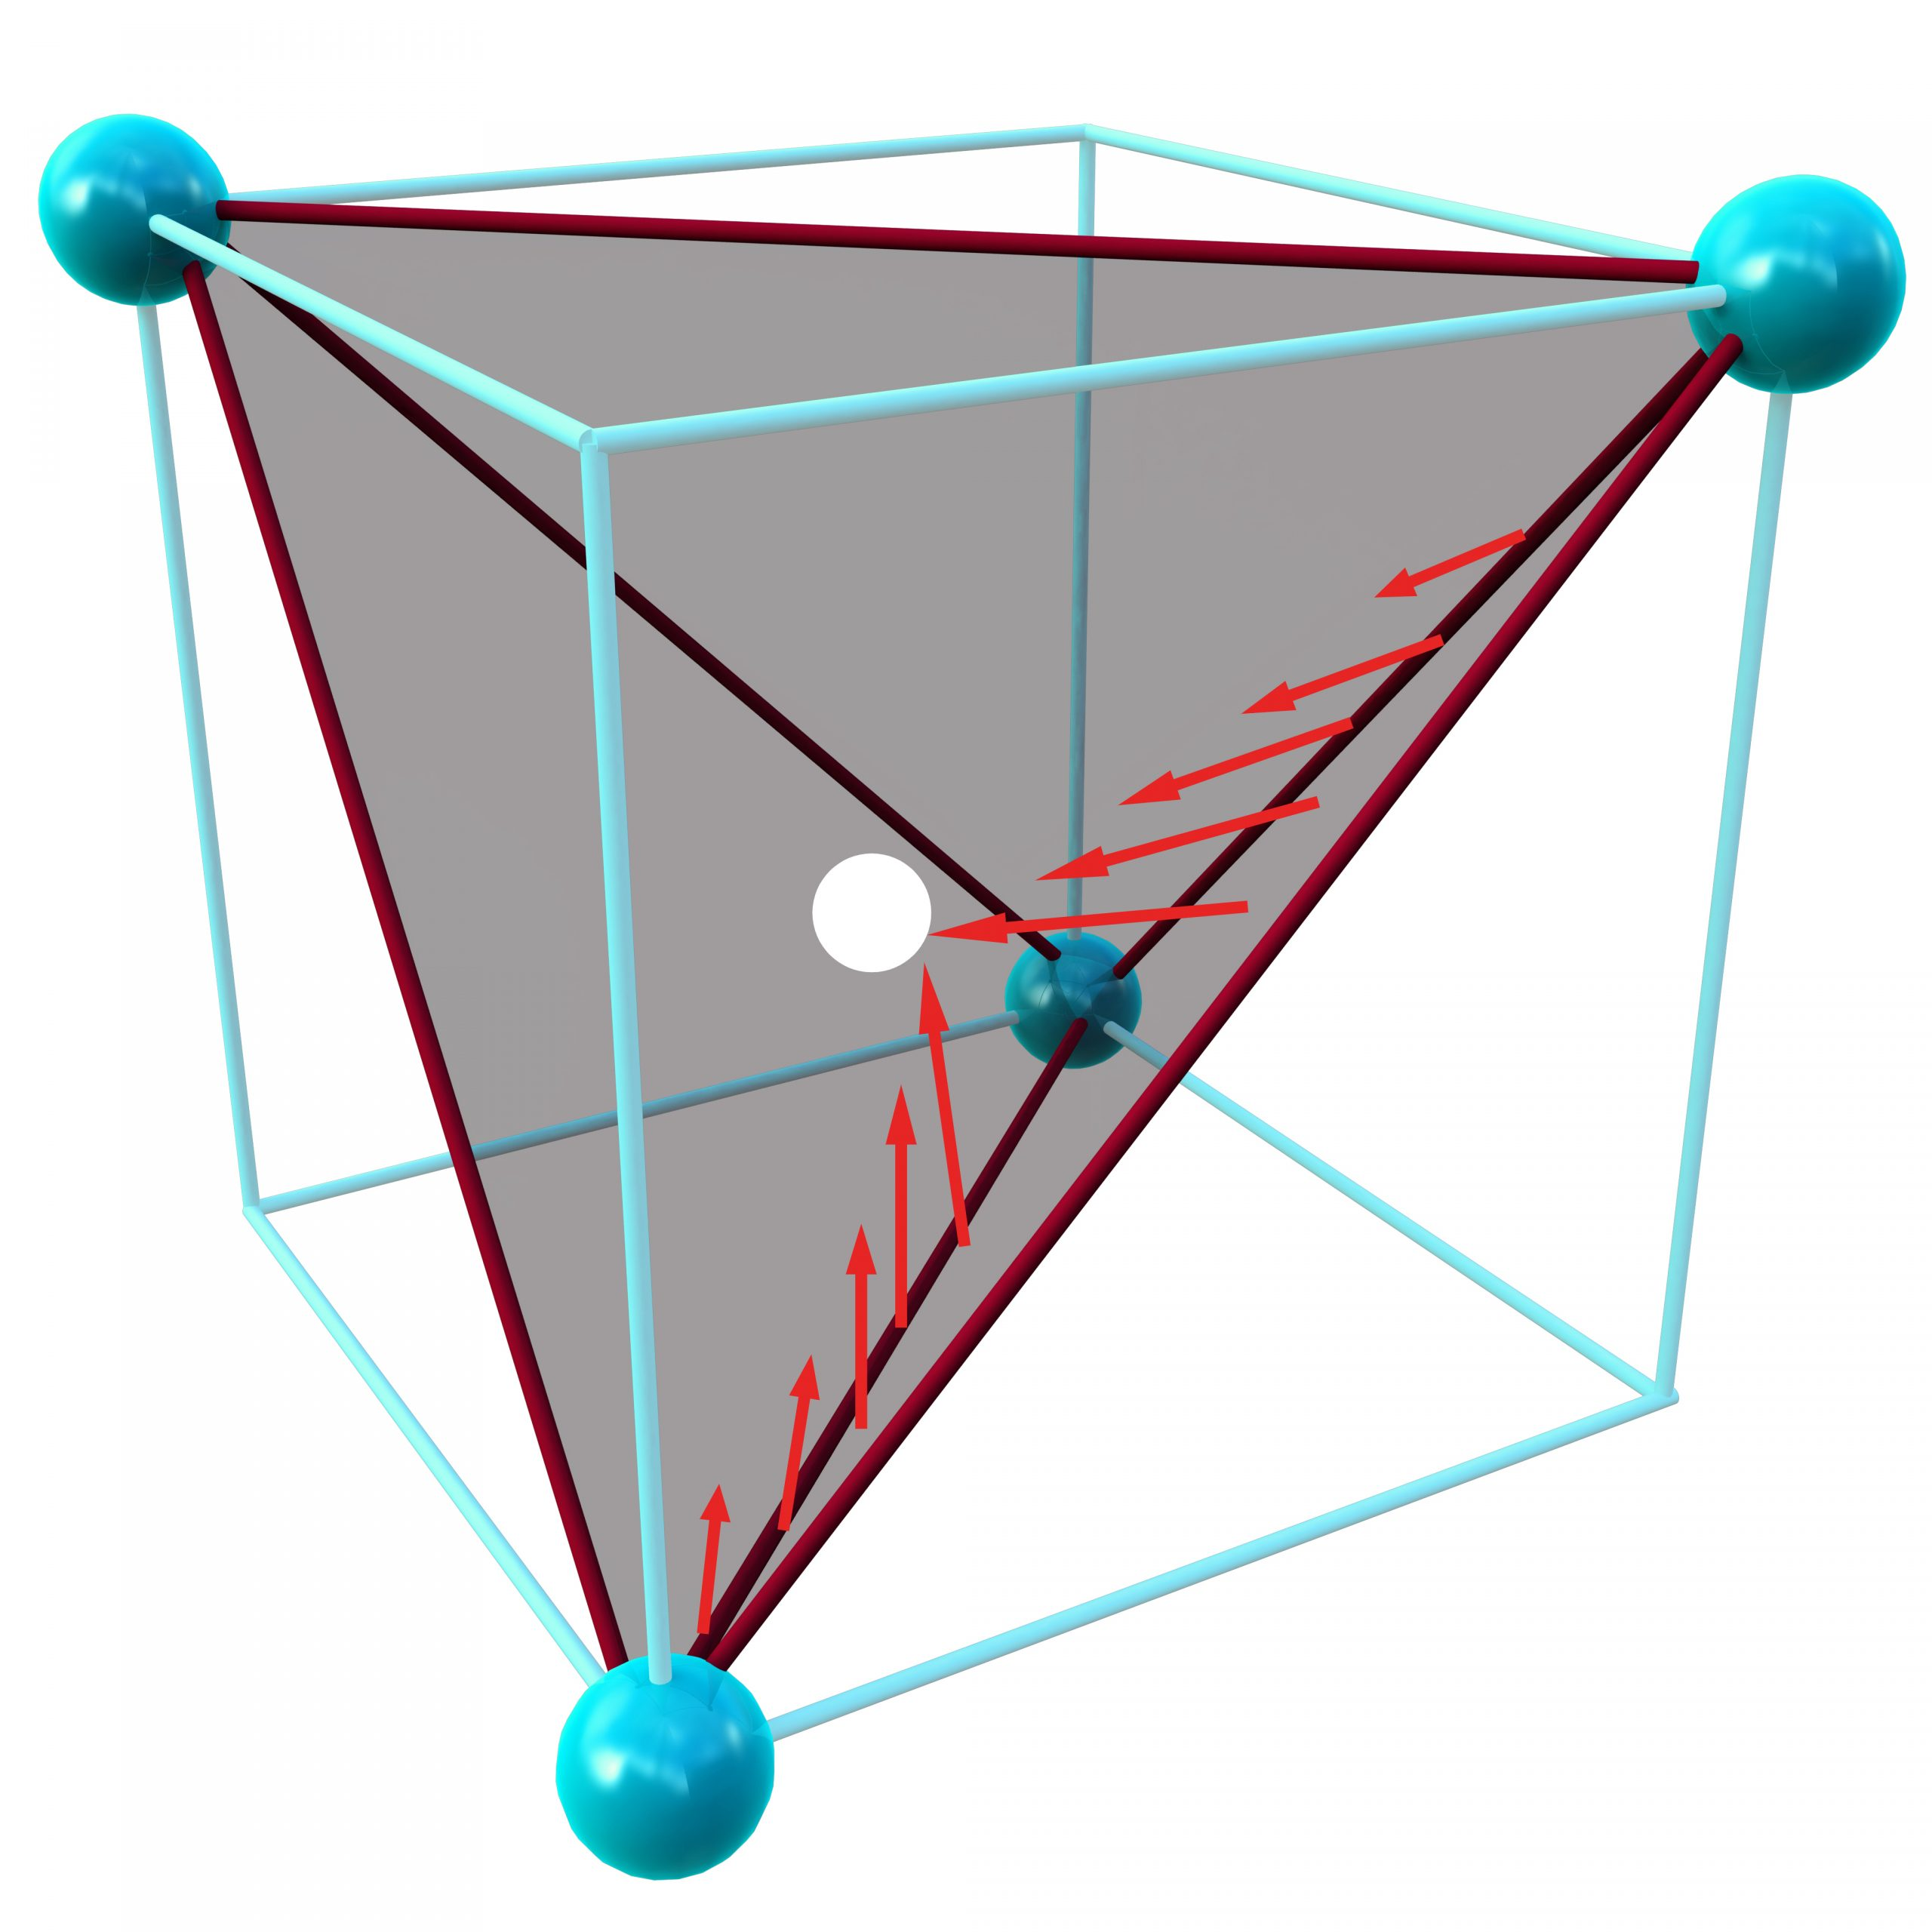 A tetrahedral plane of electrons